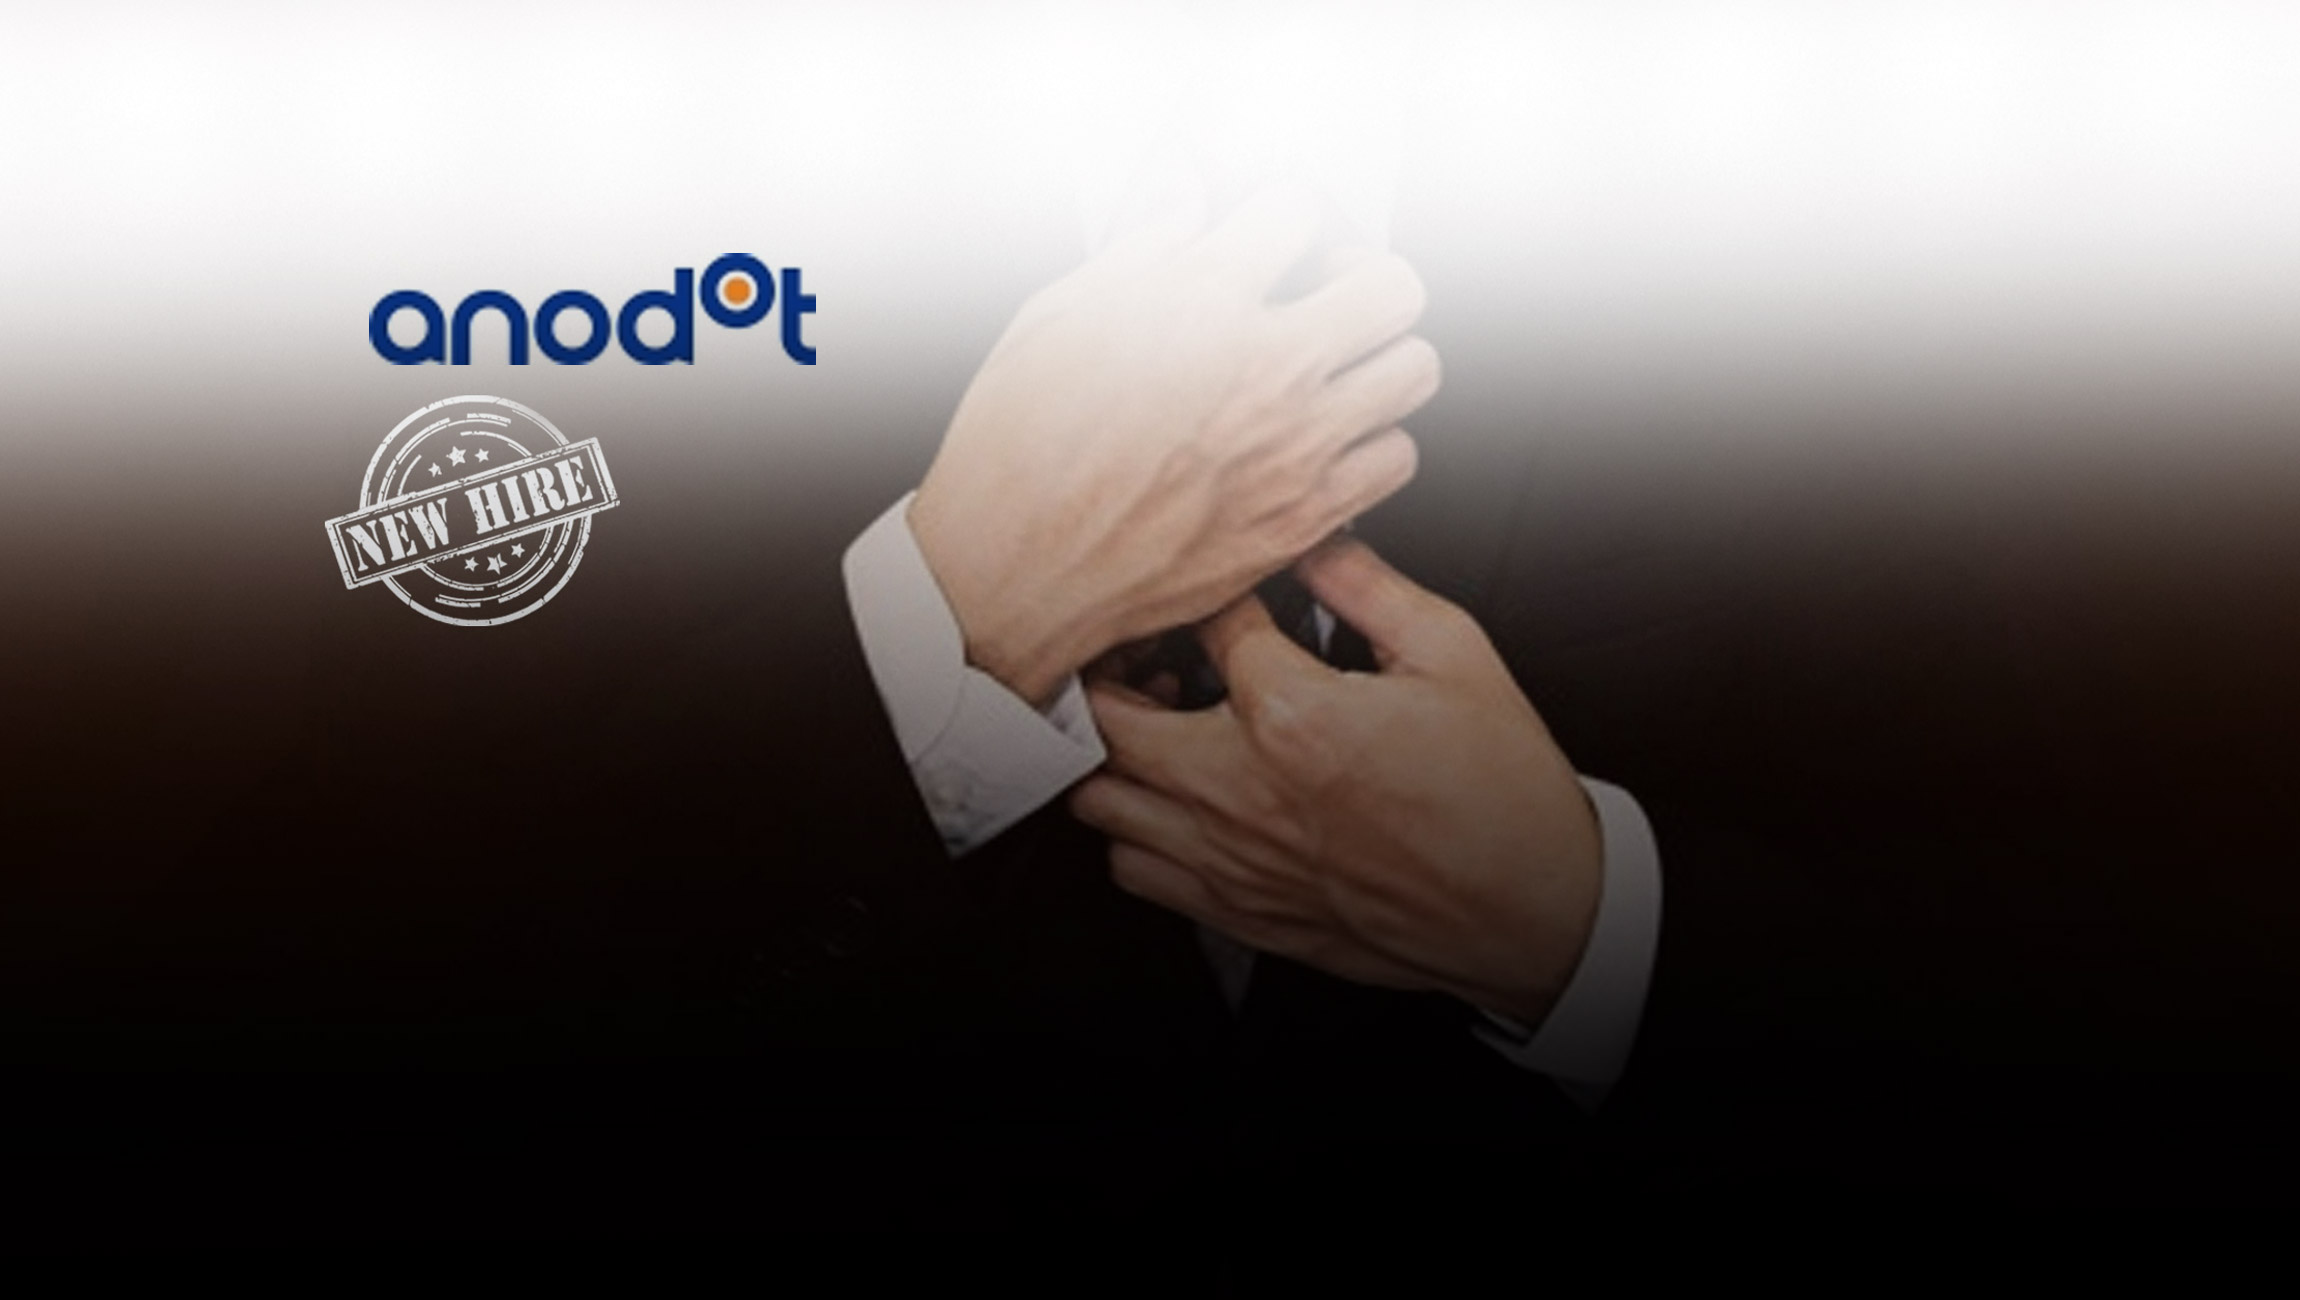 Anodot Expands Executive Team by Appointing Randy Jones as Chief Revenue Officer